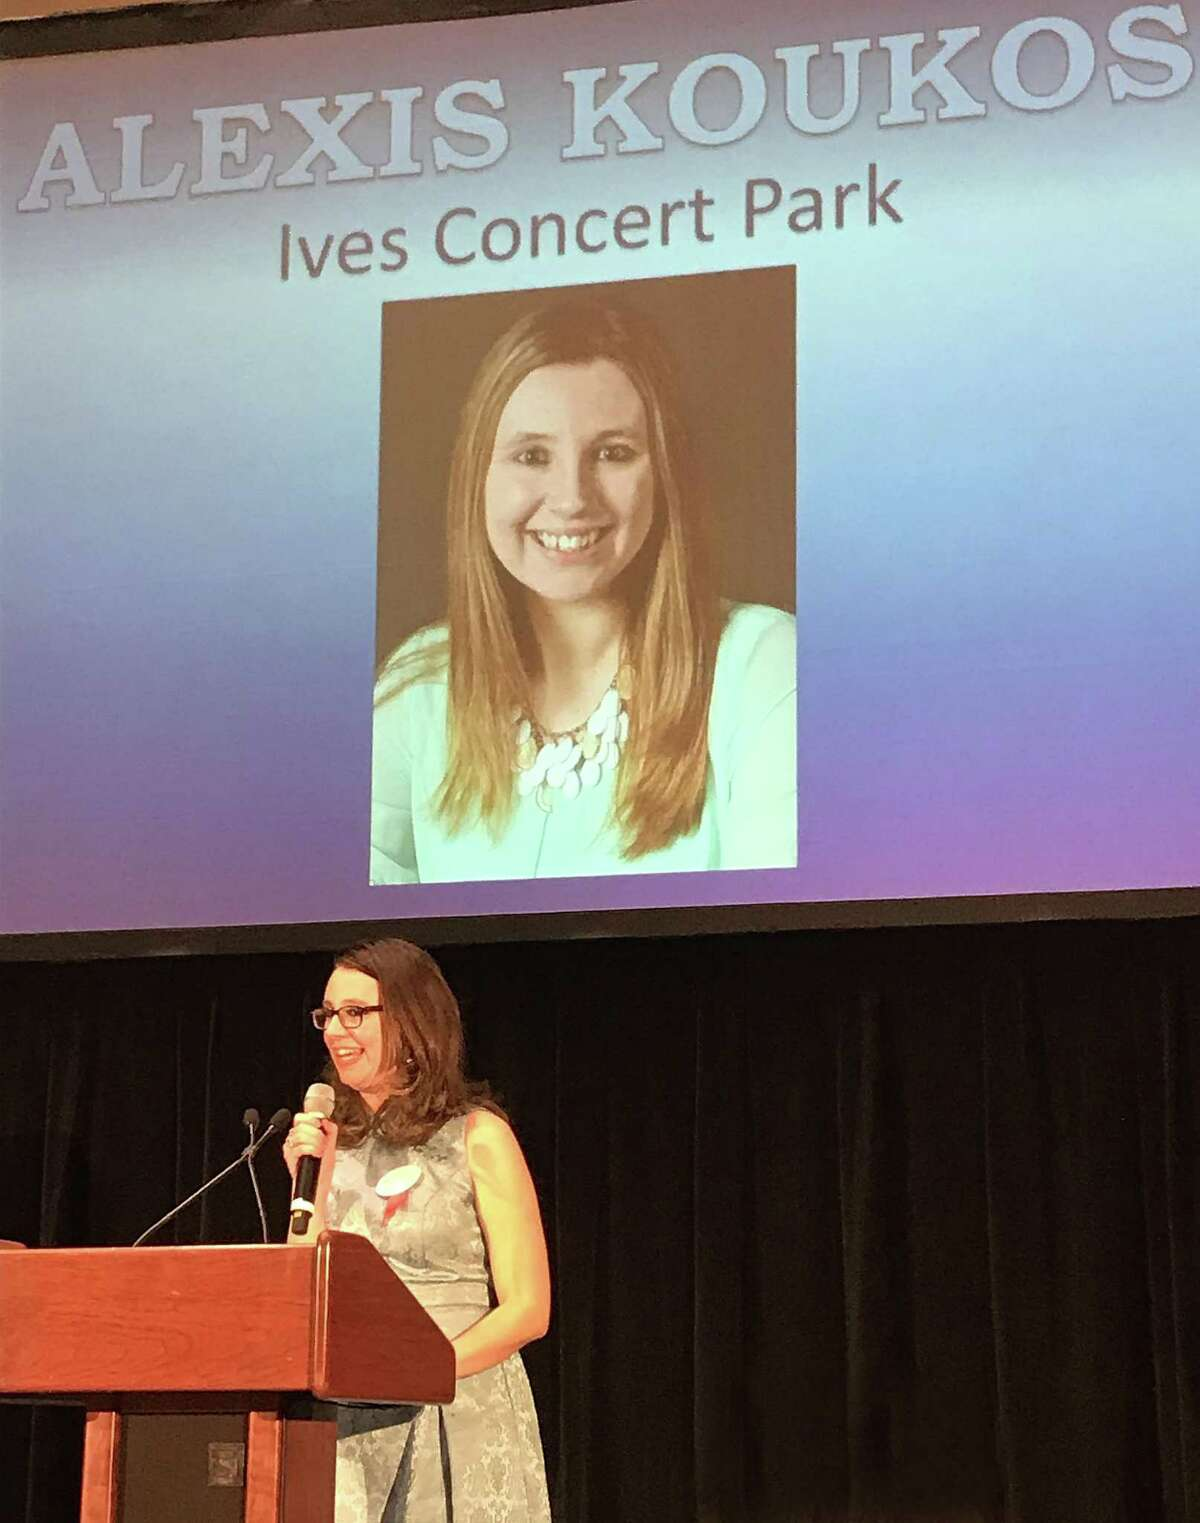 Alexis Koukos gives a speech as she accepts a Millennial Award from Westfair Communications on Nov. 14, 2017, in White Plains, N.Y., in this photo taken by Phyllis Cortese.